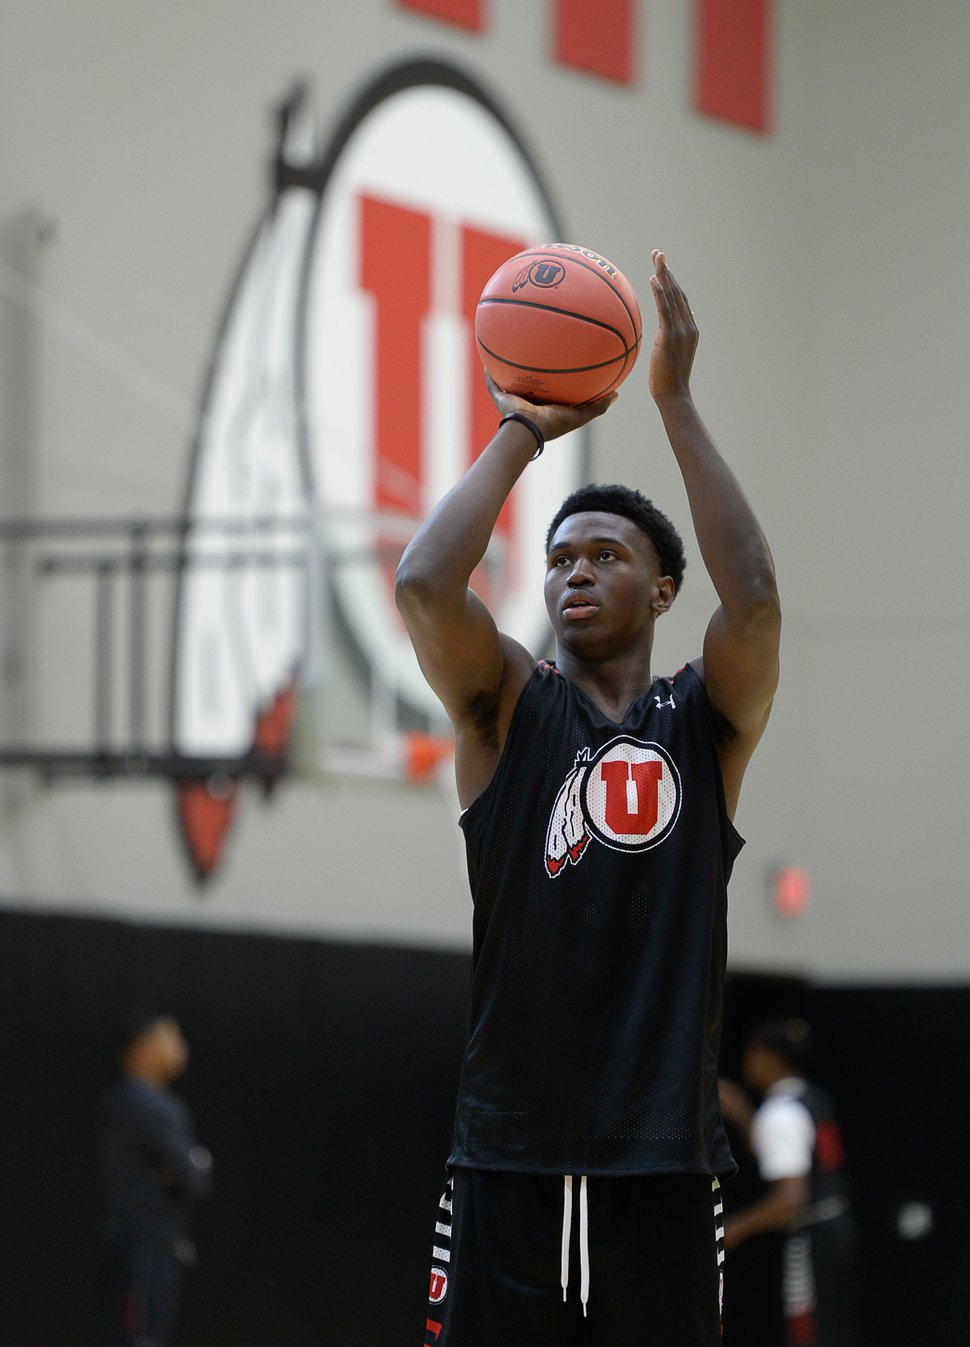 (Francisco Kjolseth | The Salt Lake Tribune) Donnie Tillman practices his shots as the Utah men's basketball program begins fall practices with a fairly new roster of players on Friday, Sept. 29, 2017.